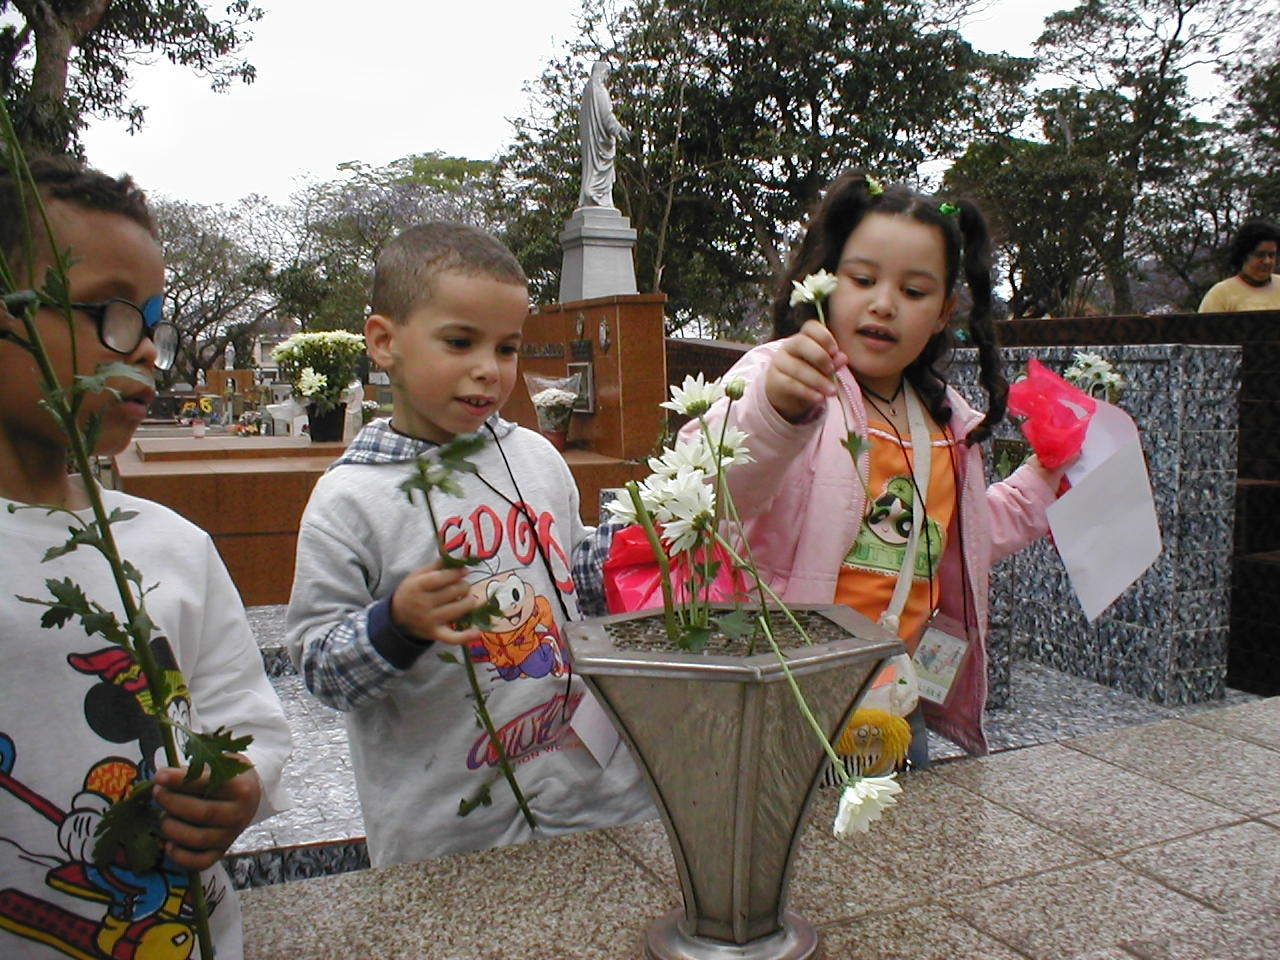 Flowers Matheus,Fabiano,Juliana